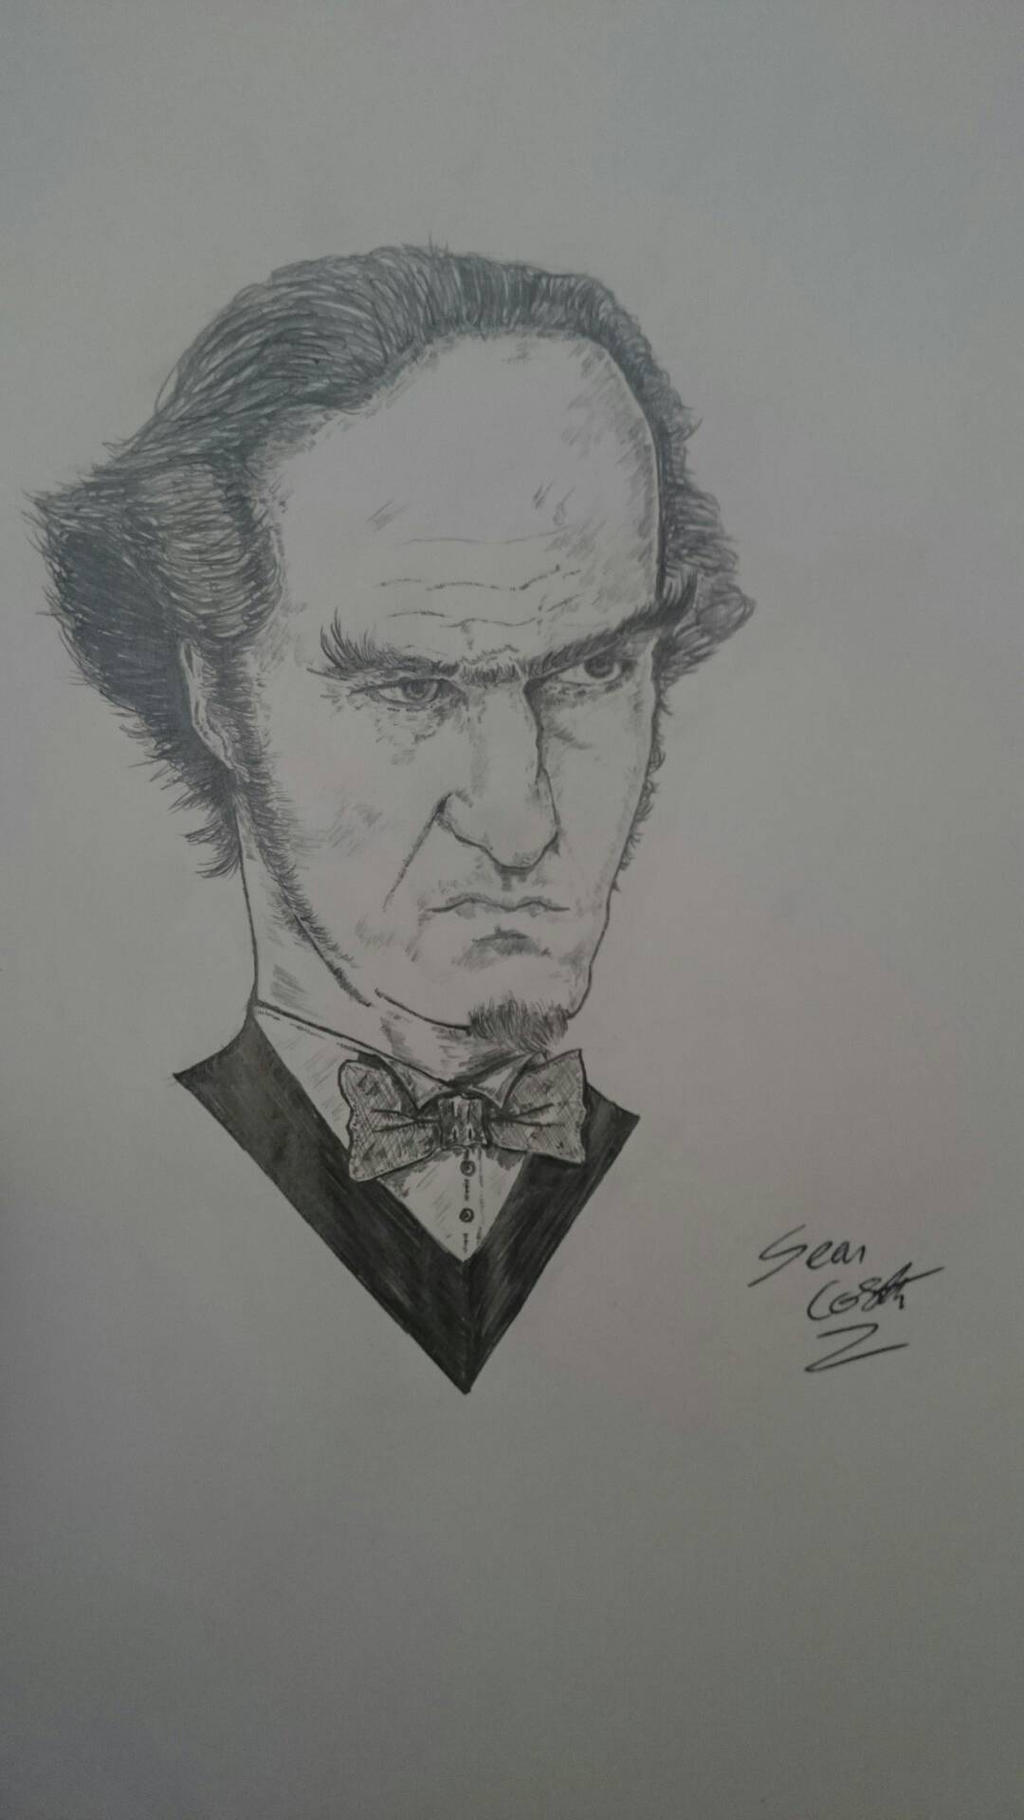 count olaf by SeanCostin26 on DeviantArt